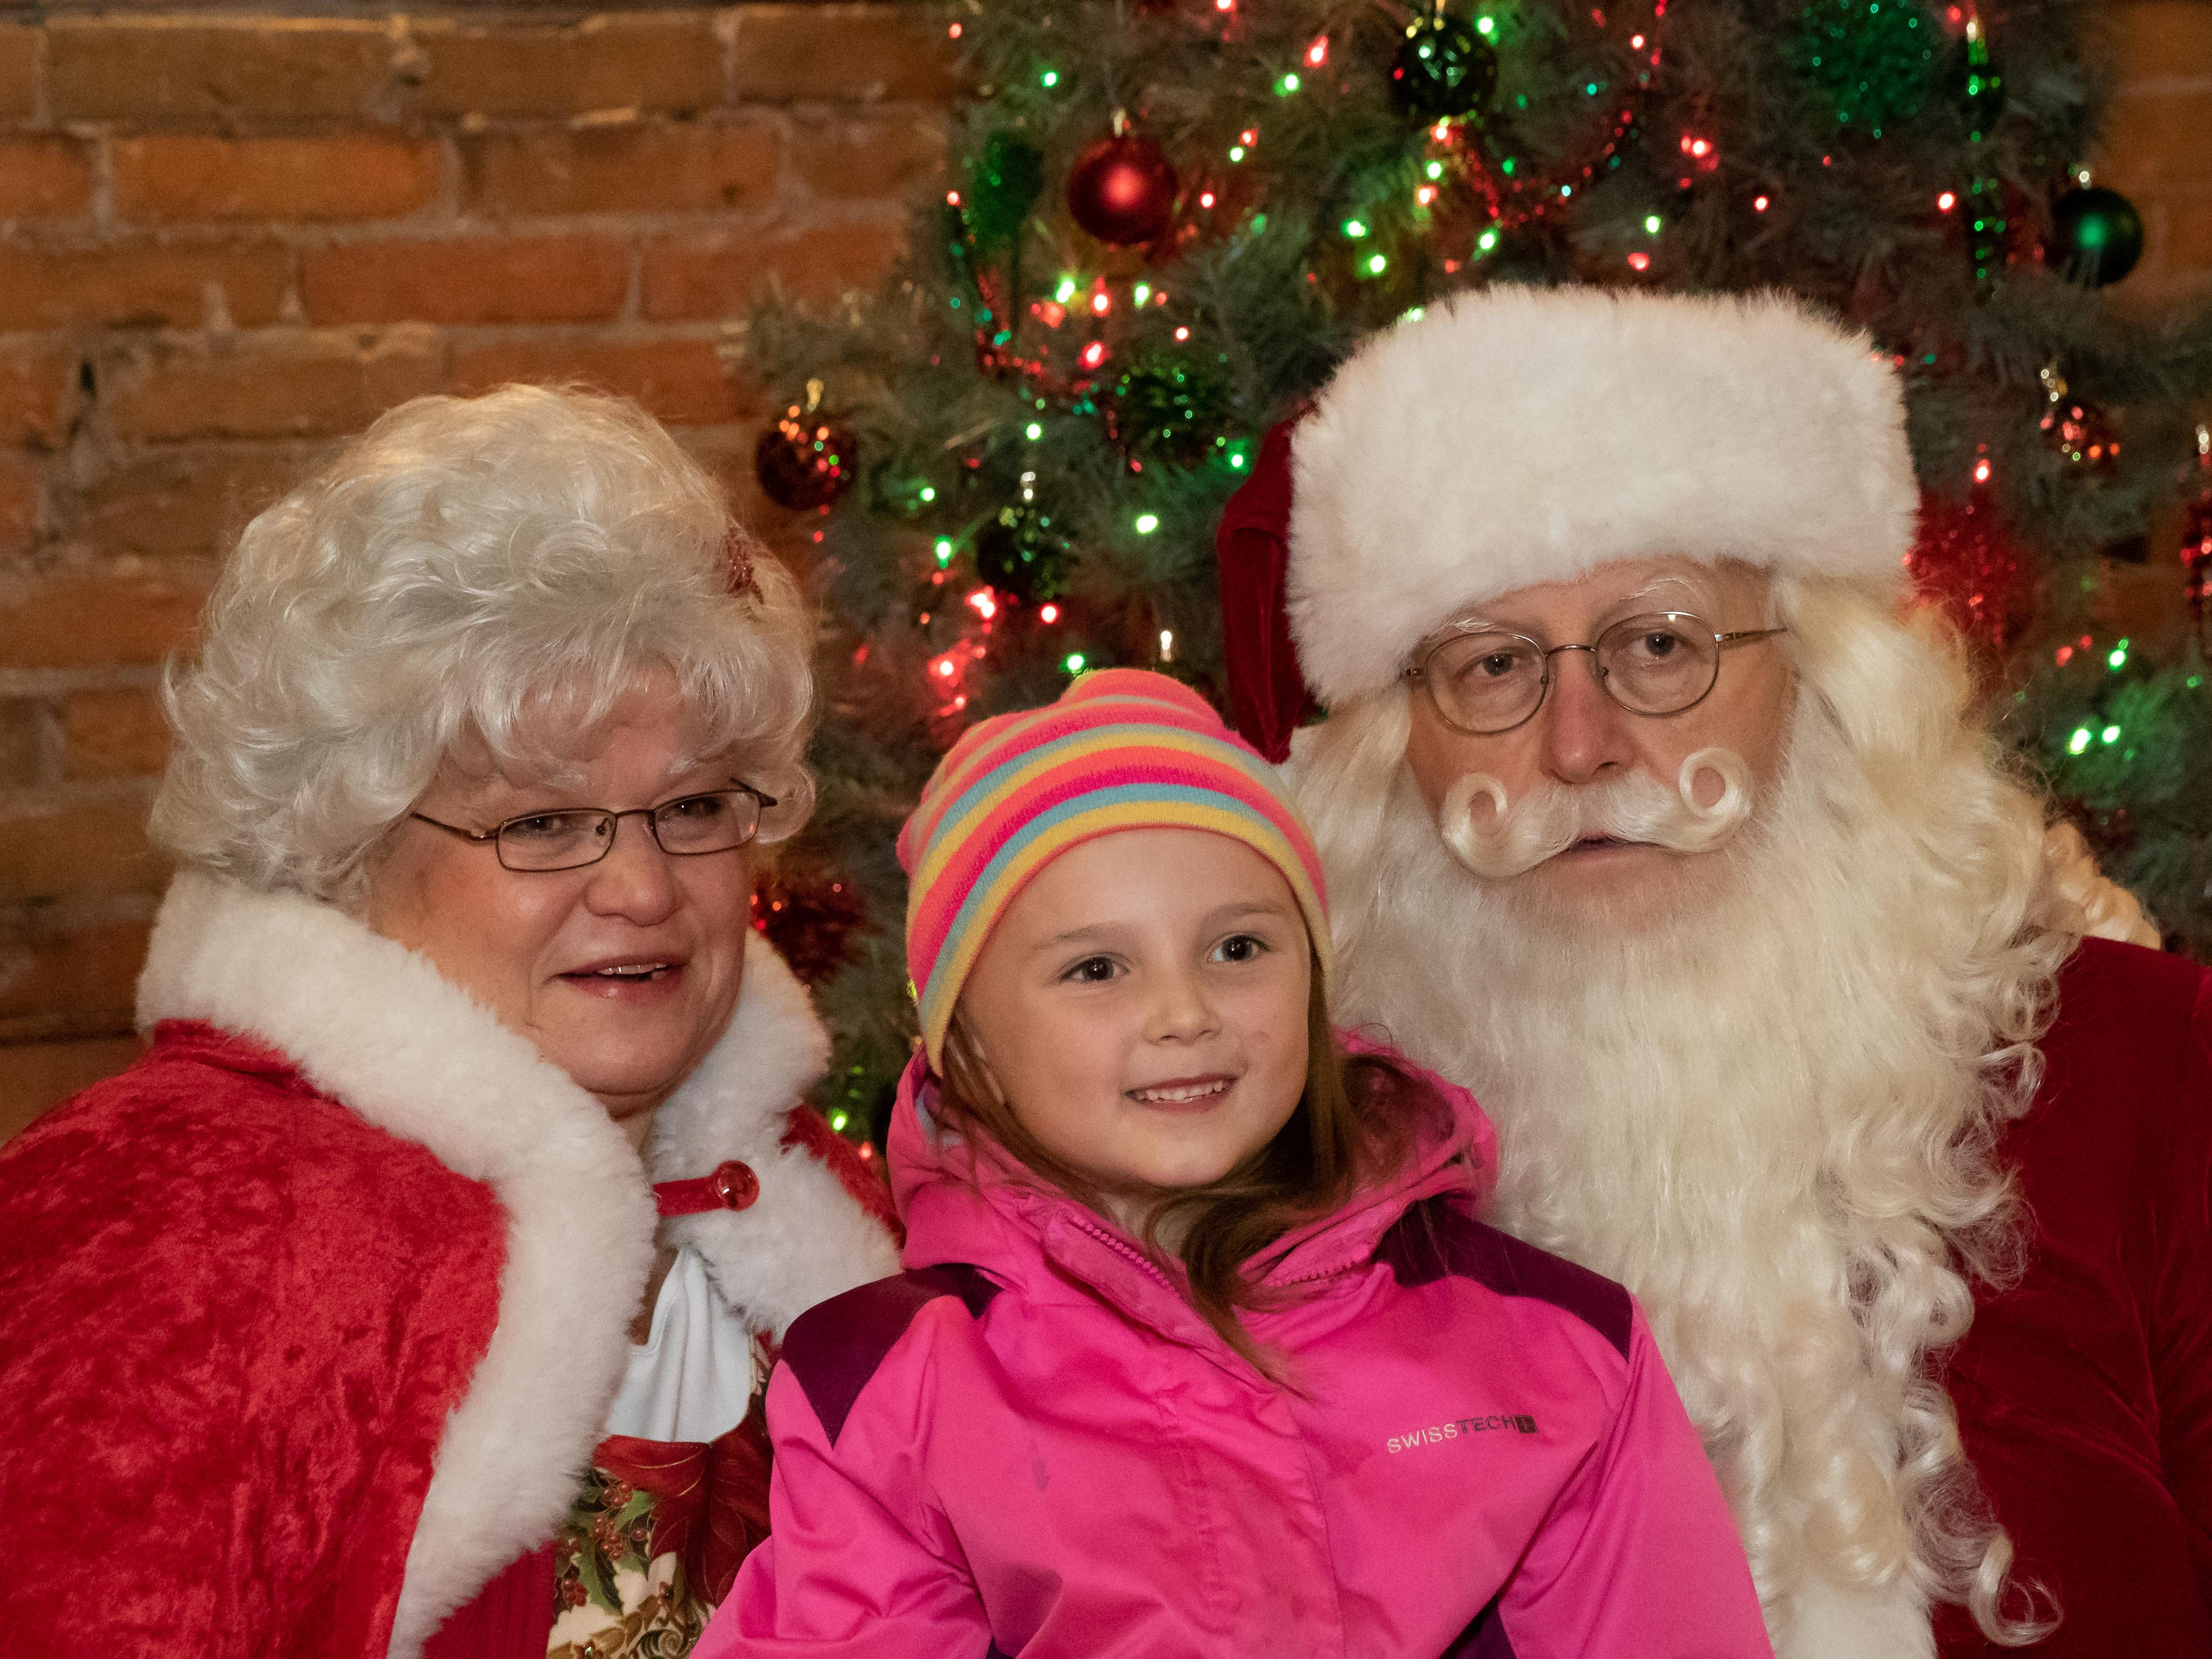 A young girl visits with Santa and Mrs. Claus following the Rekindle the Season holiday parade on Wednesday, Nov. 21, 2018, in downtown Wisconsin Rapids.